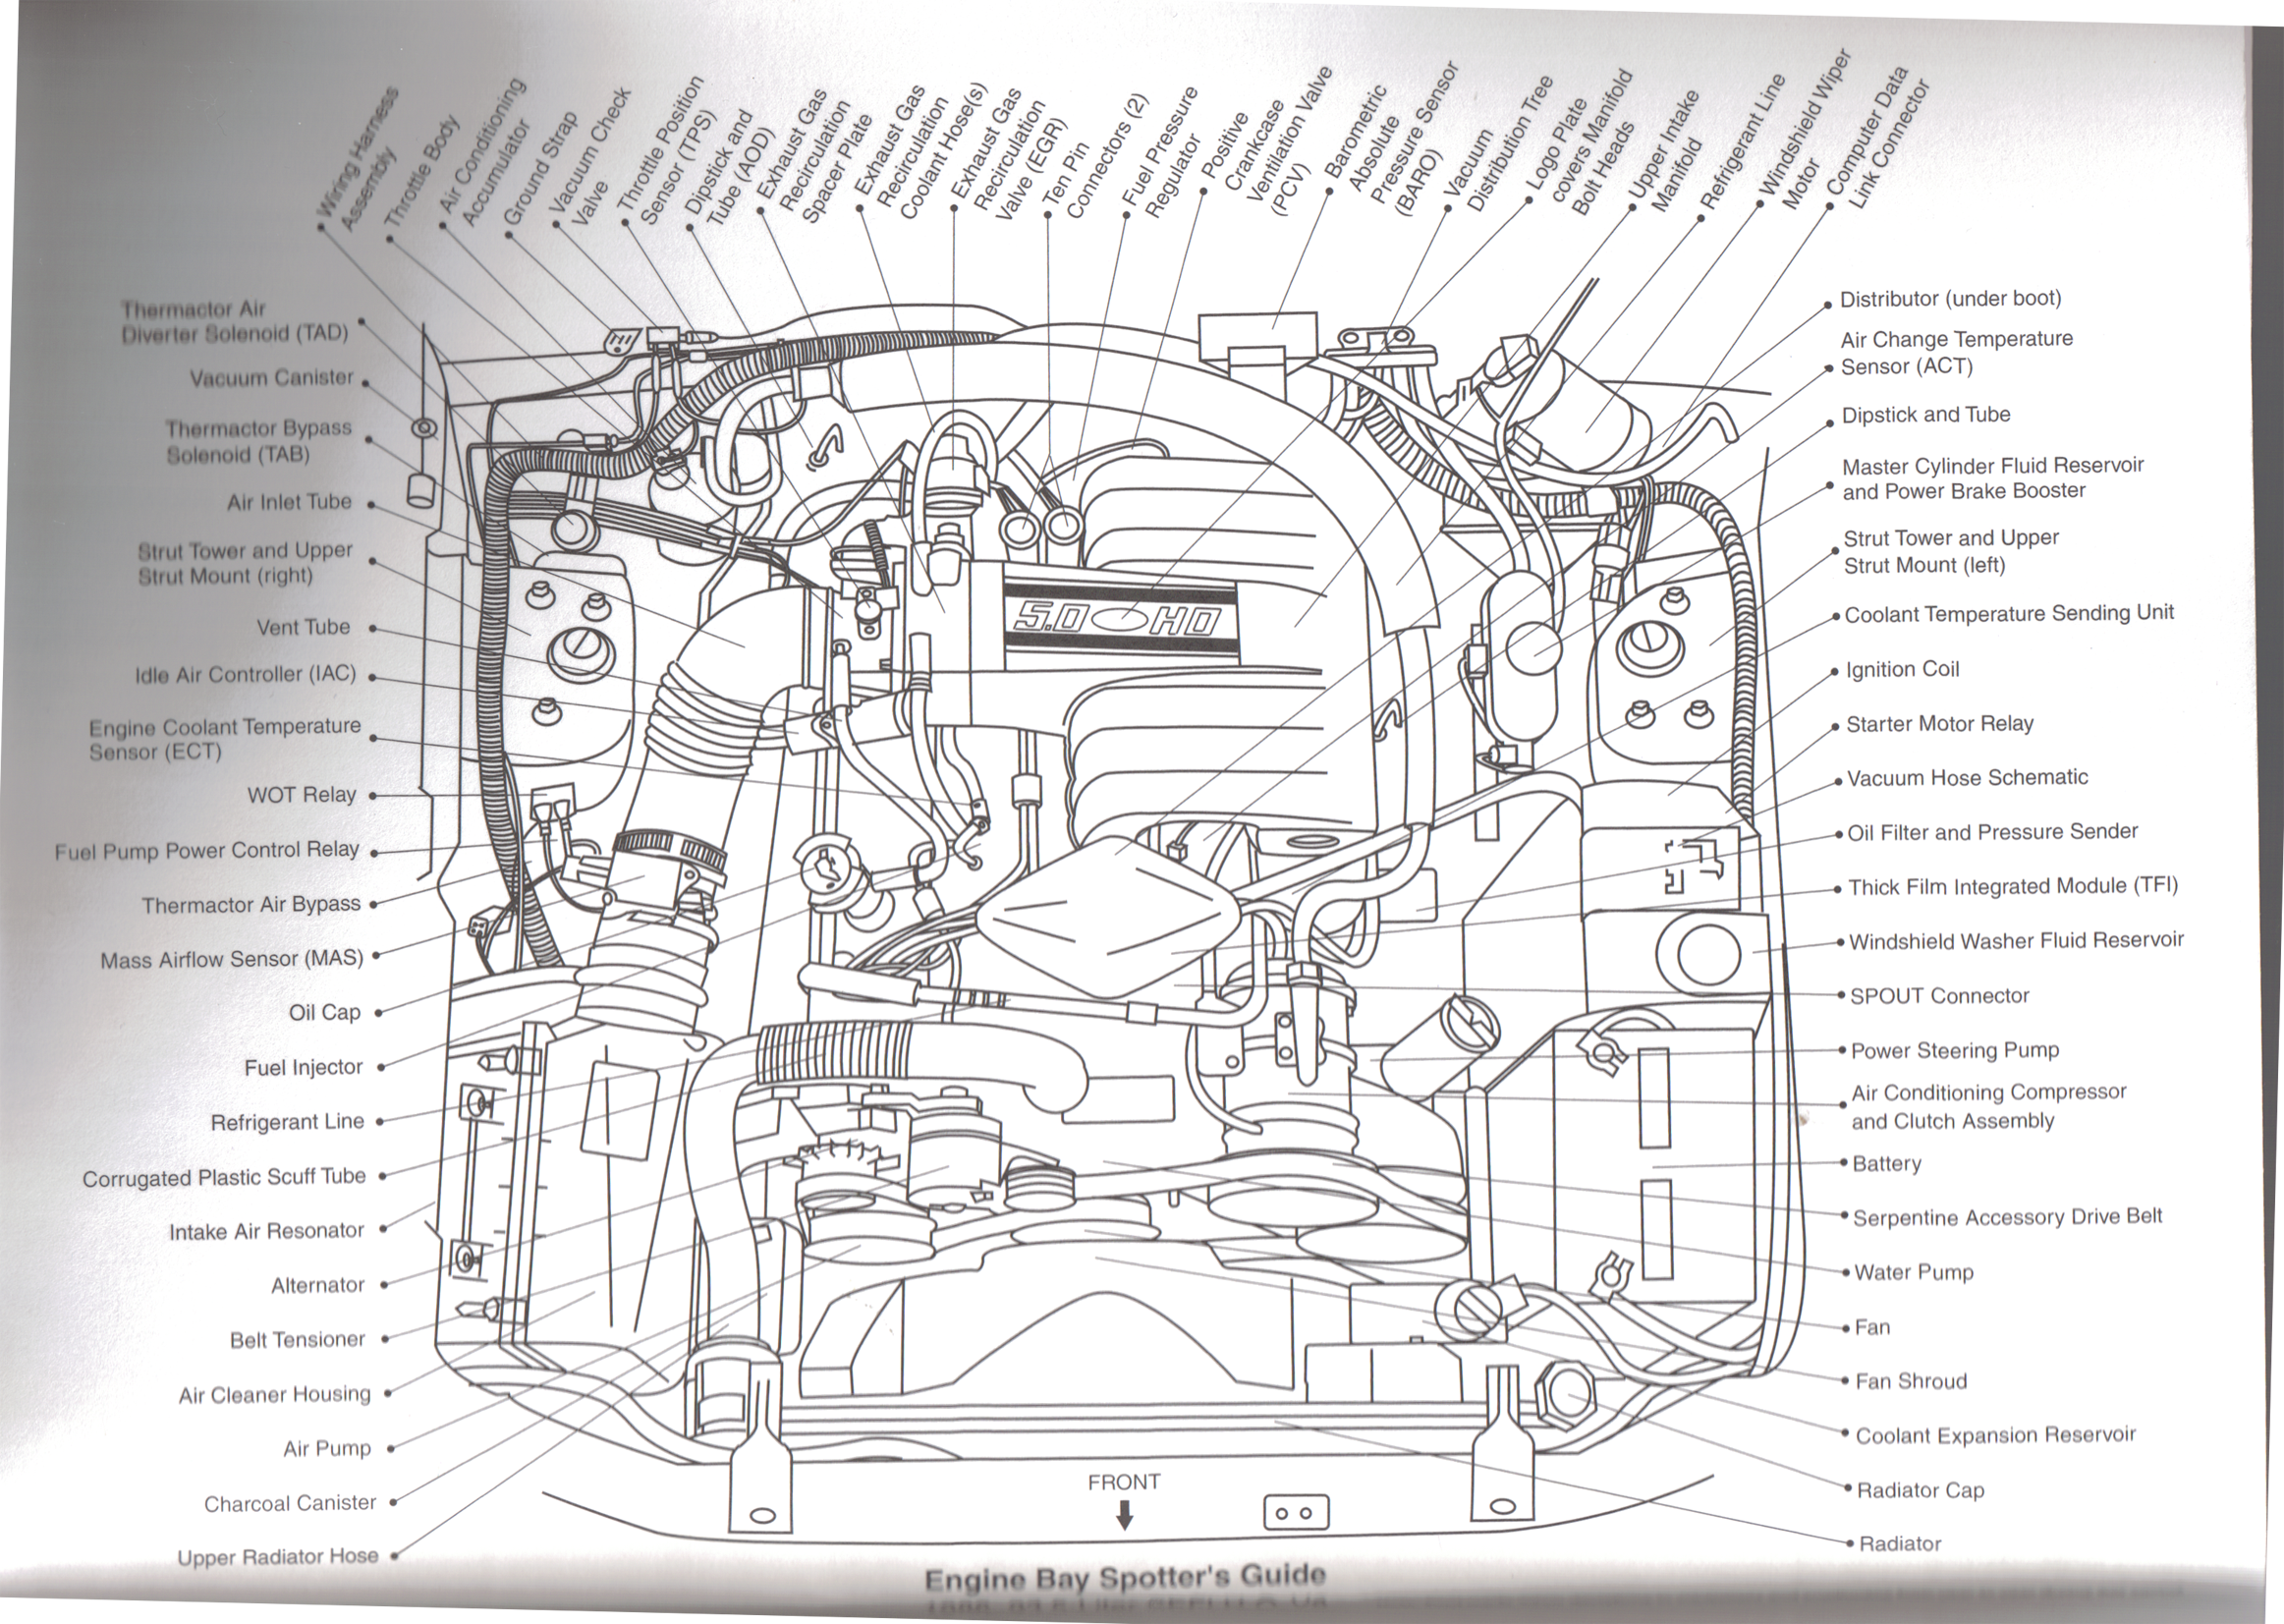 1987 1993 foxbody 5.0 sefi v8 engine part diagram everything you need to know about 1979 1993 foxbody mustangs ignition wiring diagram 93 mustang at crackthecode.co